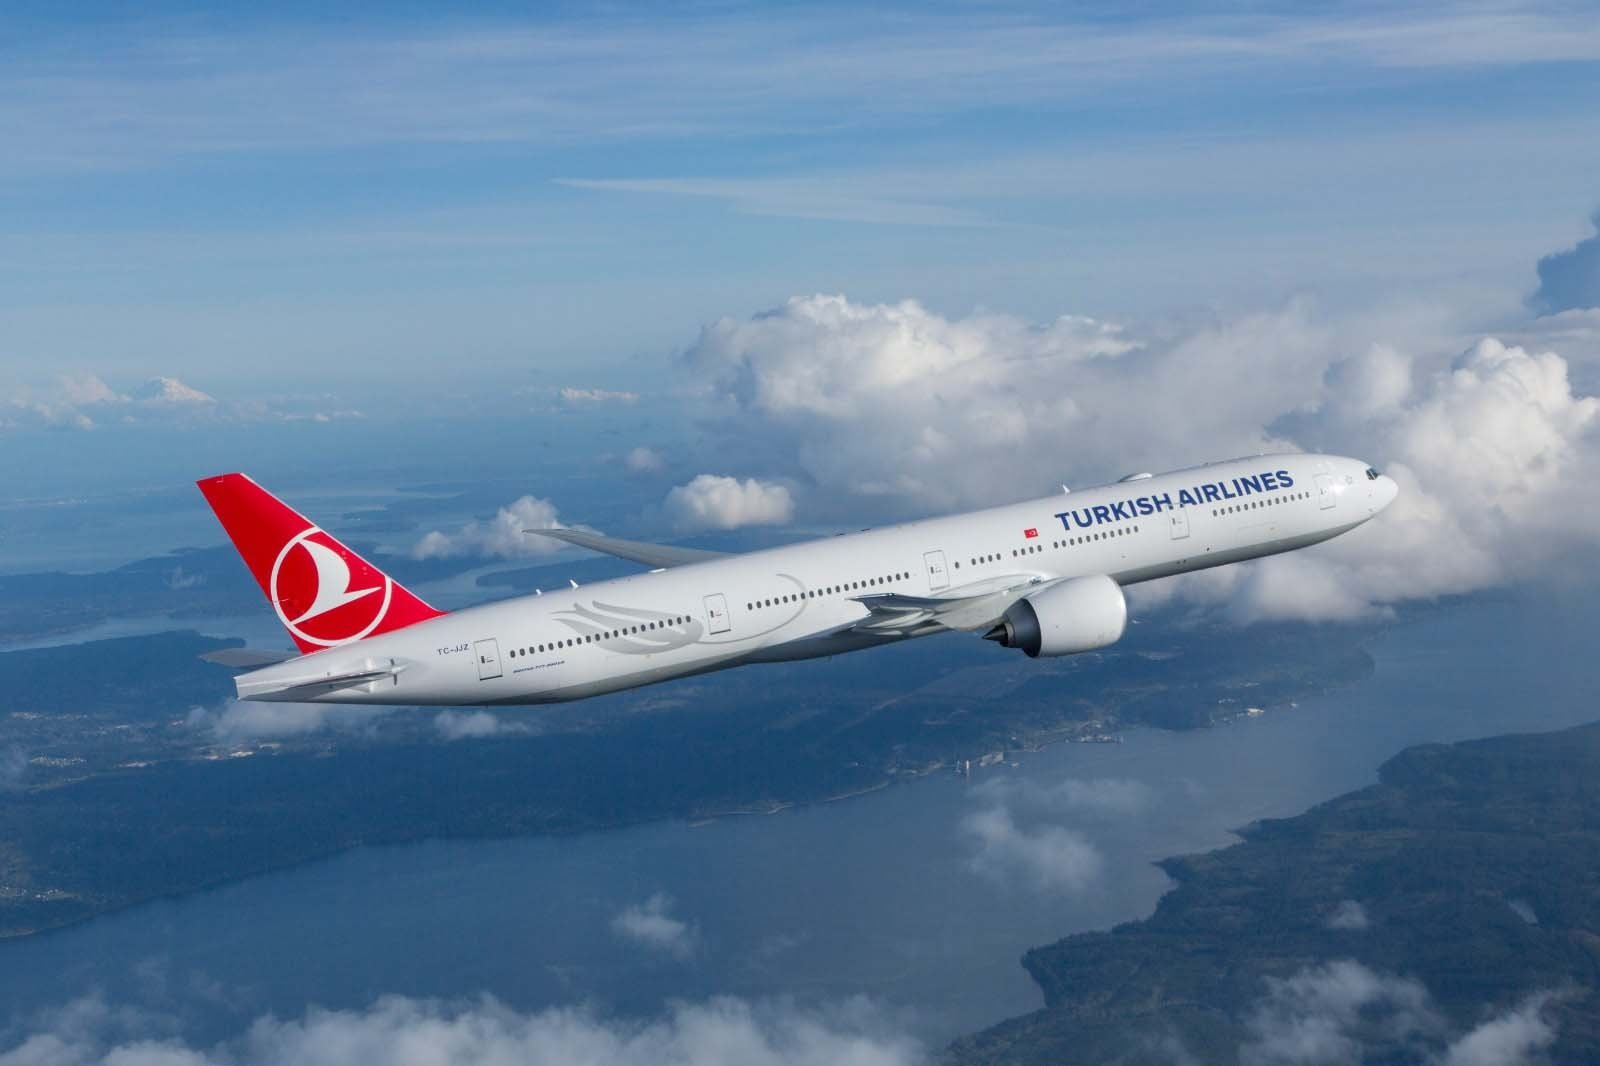 A THY plane in a photo provided on Jan. 12, 2021. (Courtesy of THY via DHA)